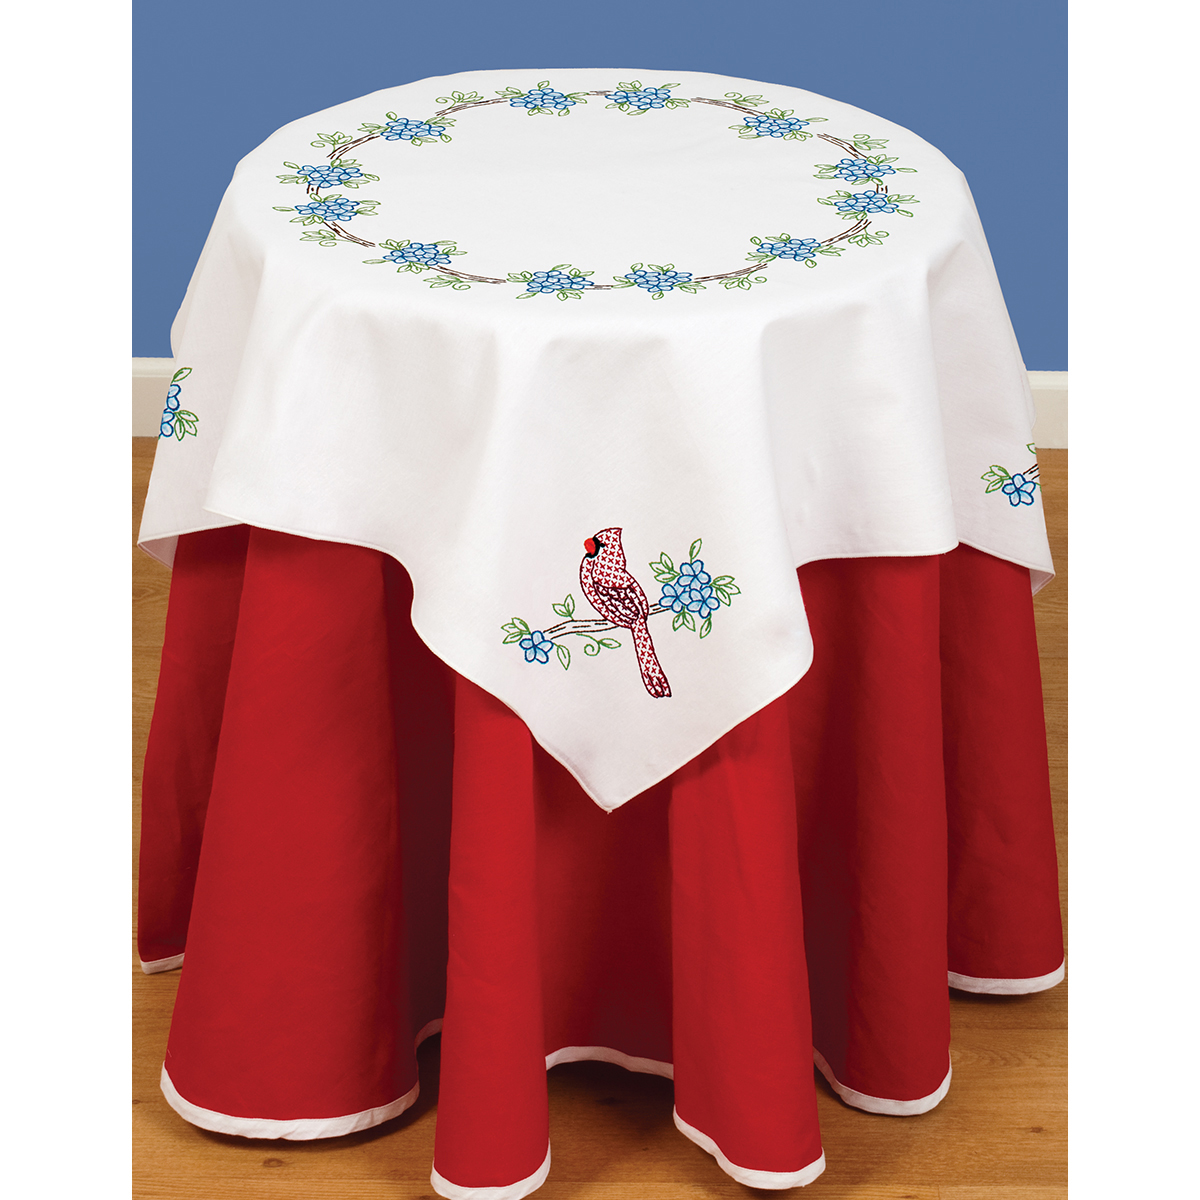 Stamped Embroidery Table Topper - Cardinal